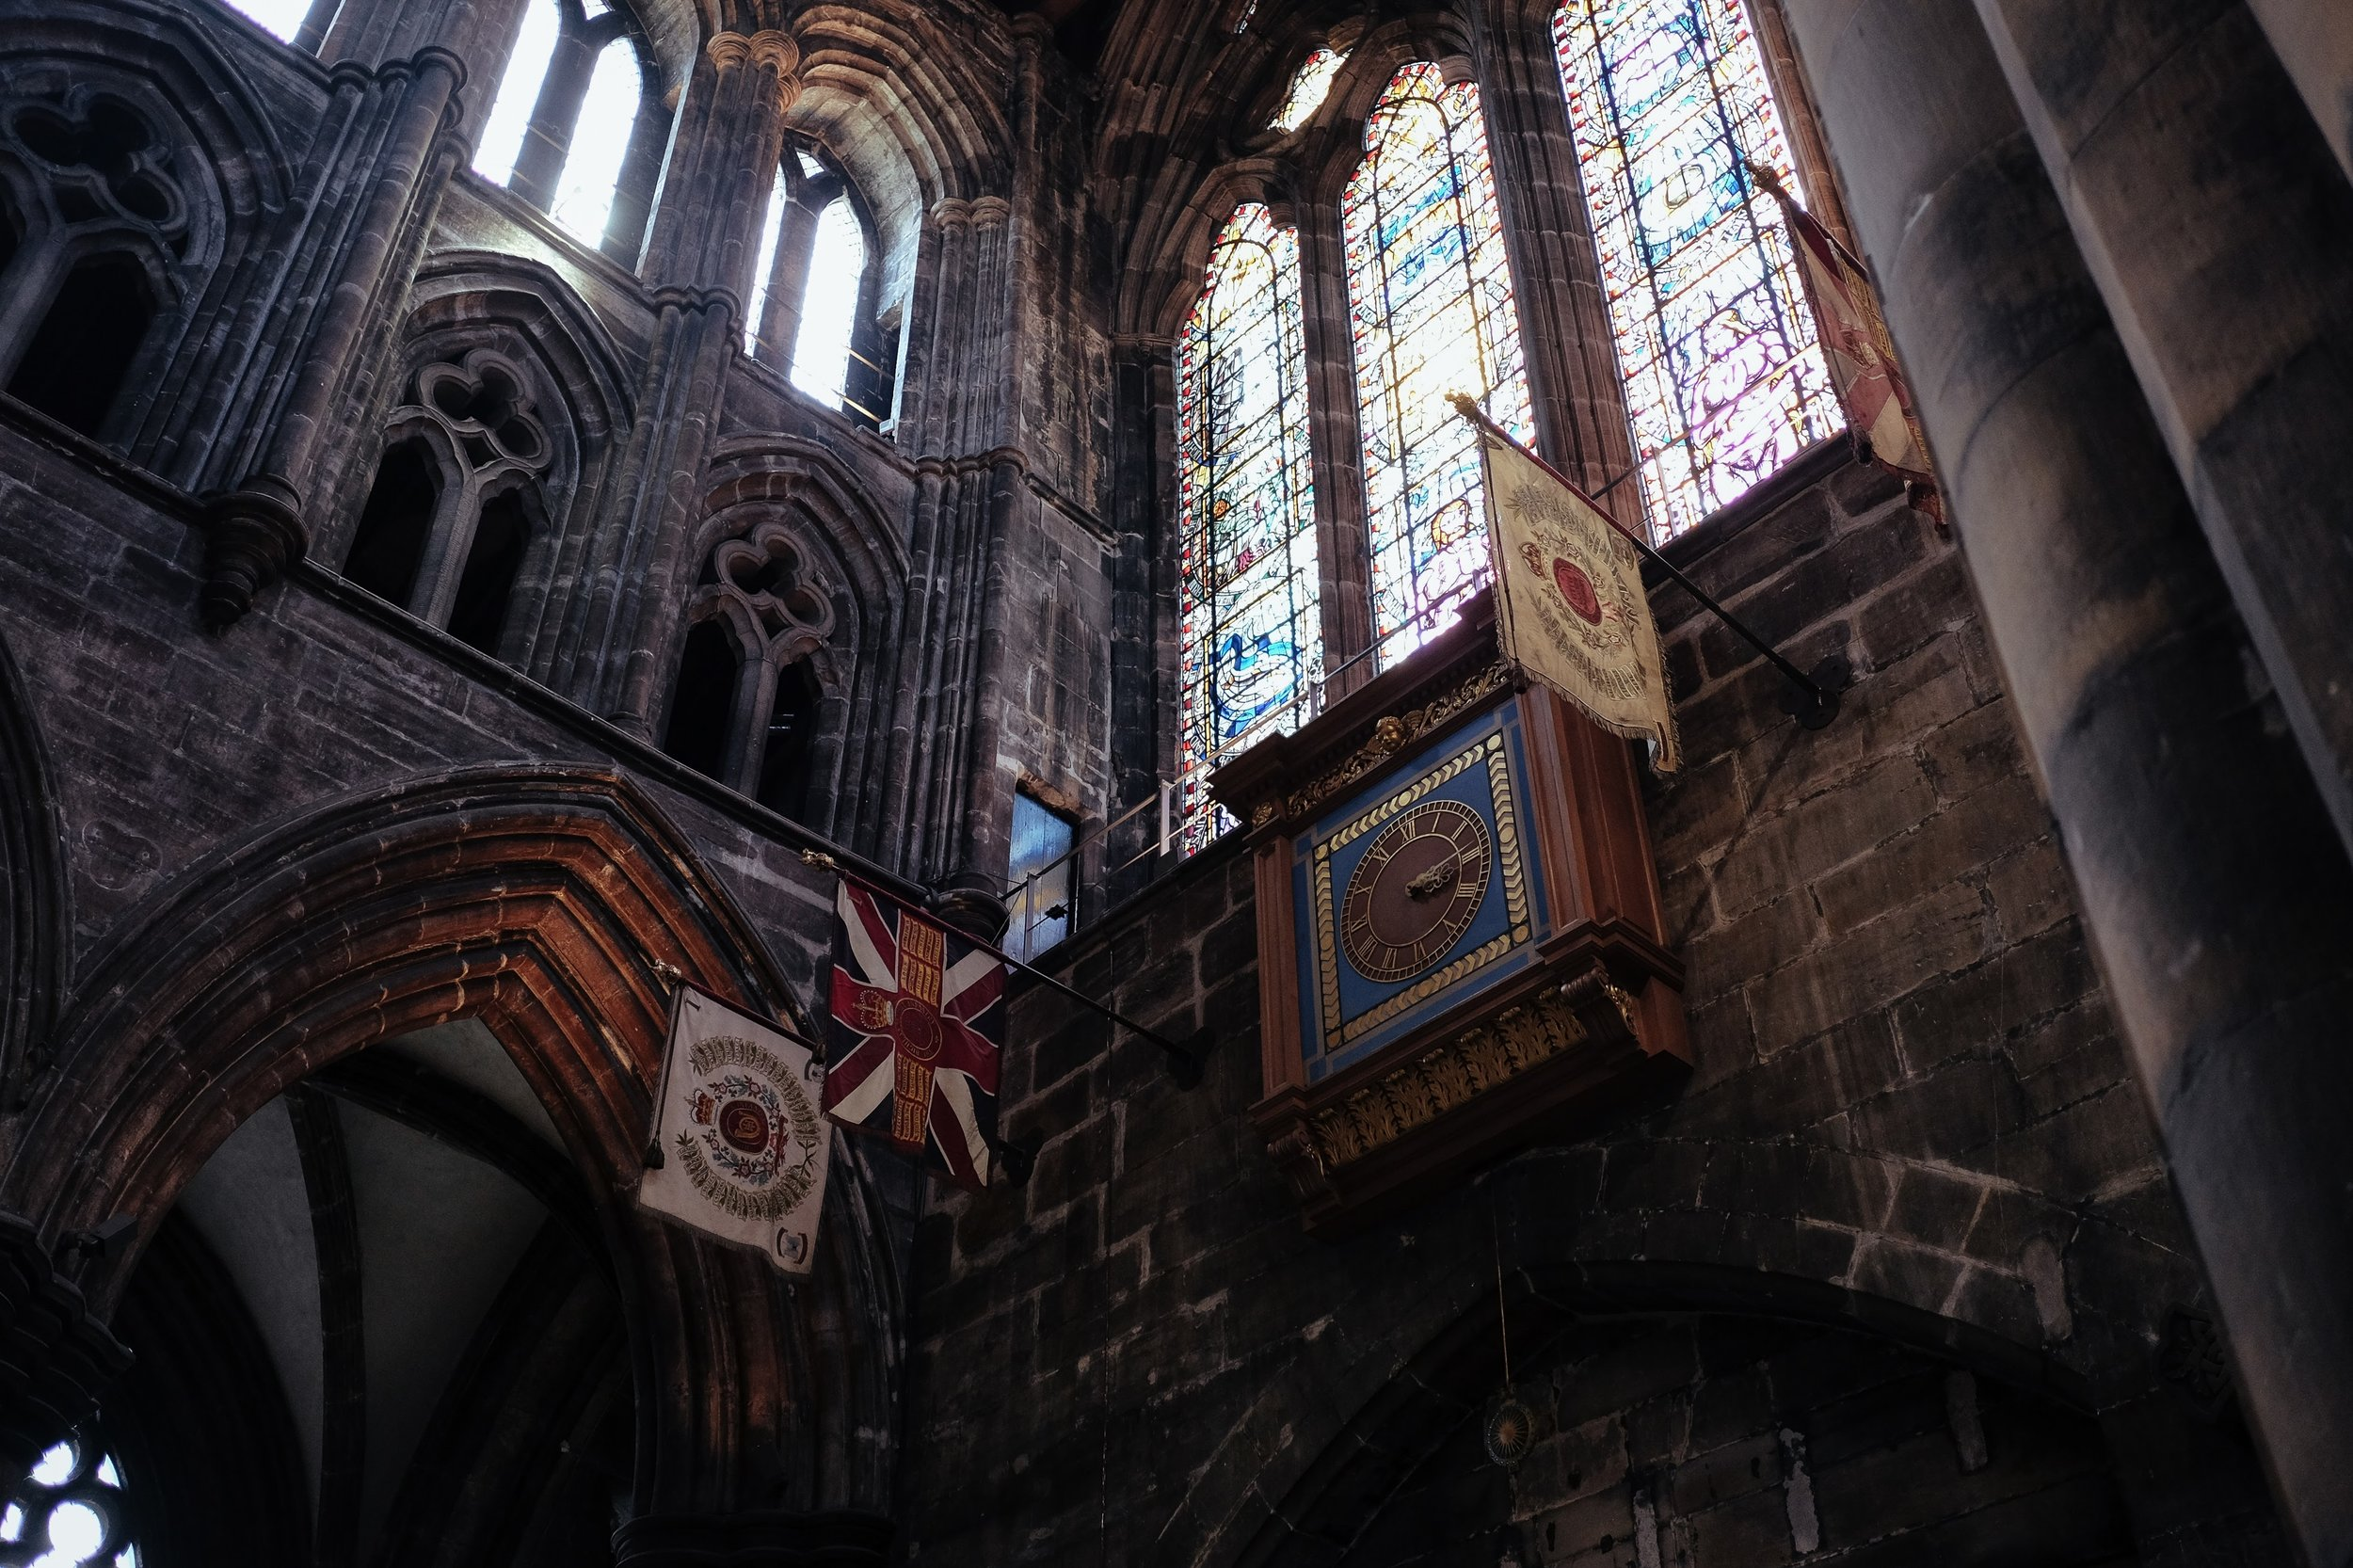 Day 2 Glasgowto Stirling - Glasgow Cathedral